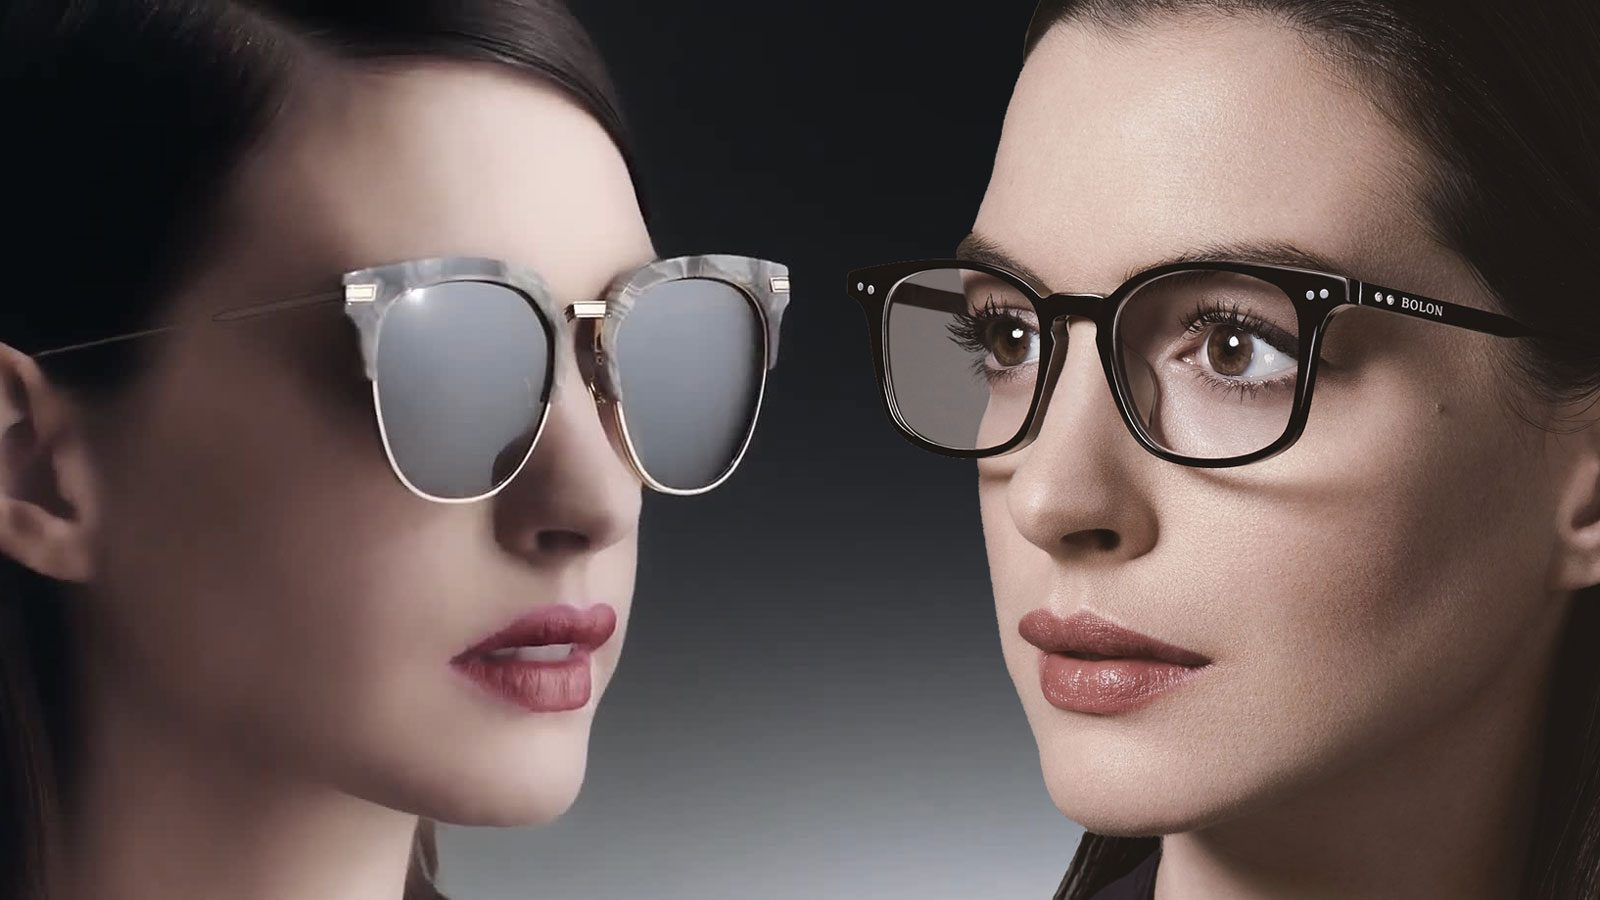 Essilor brings Bolon eyewear to the Philippines